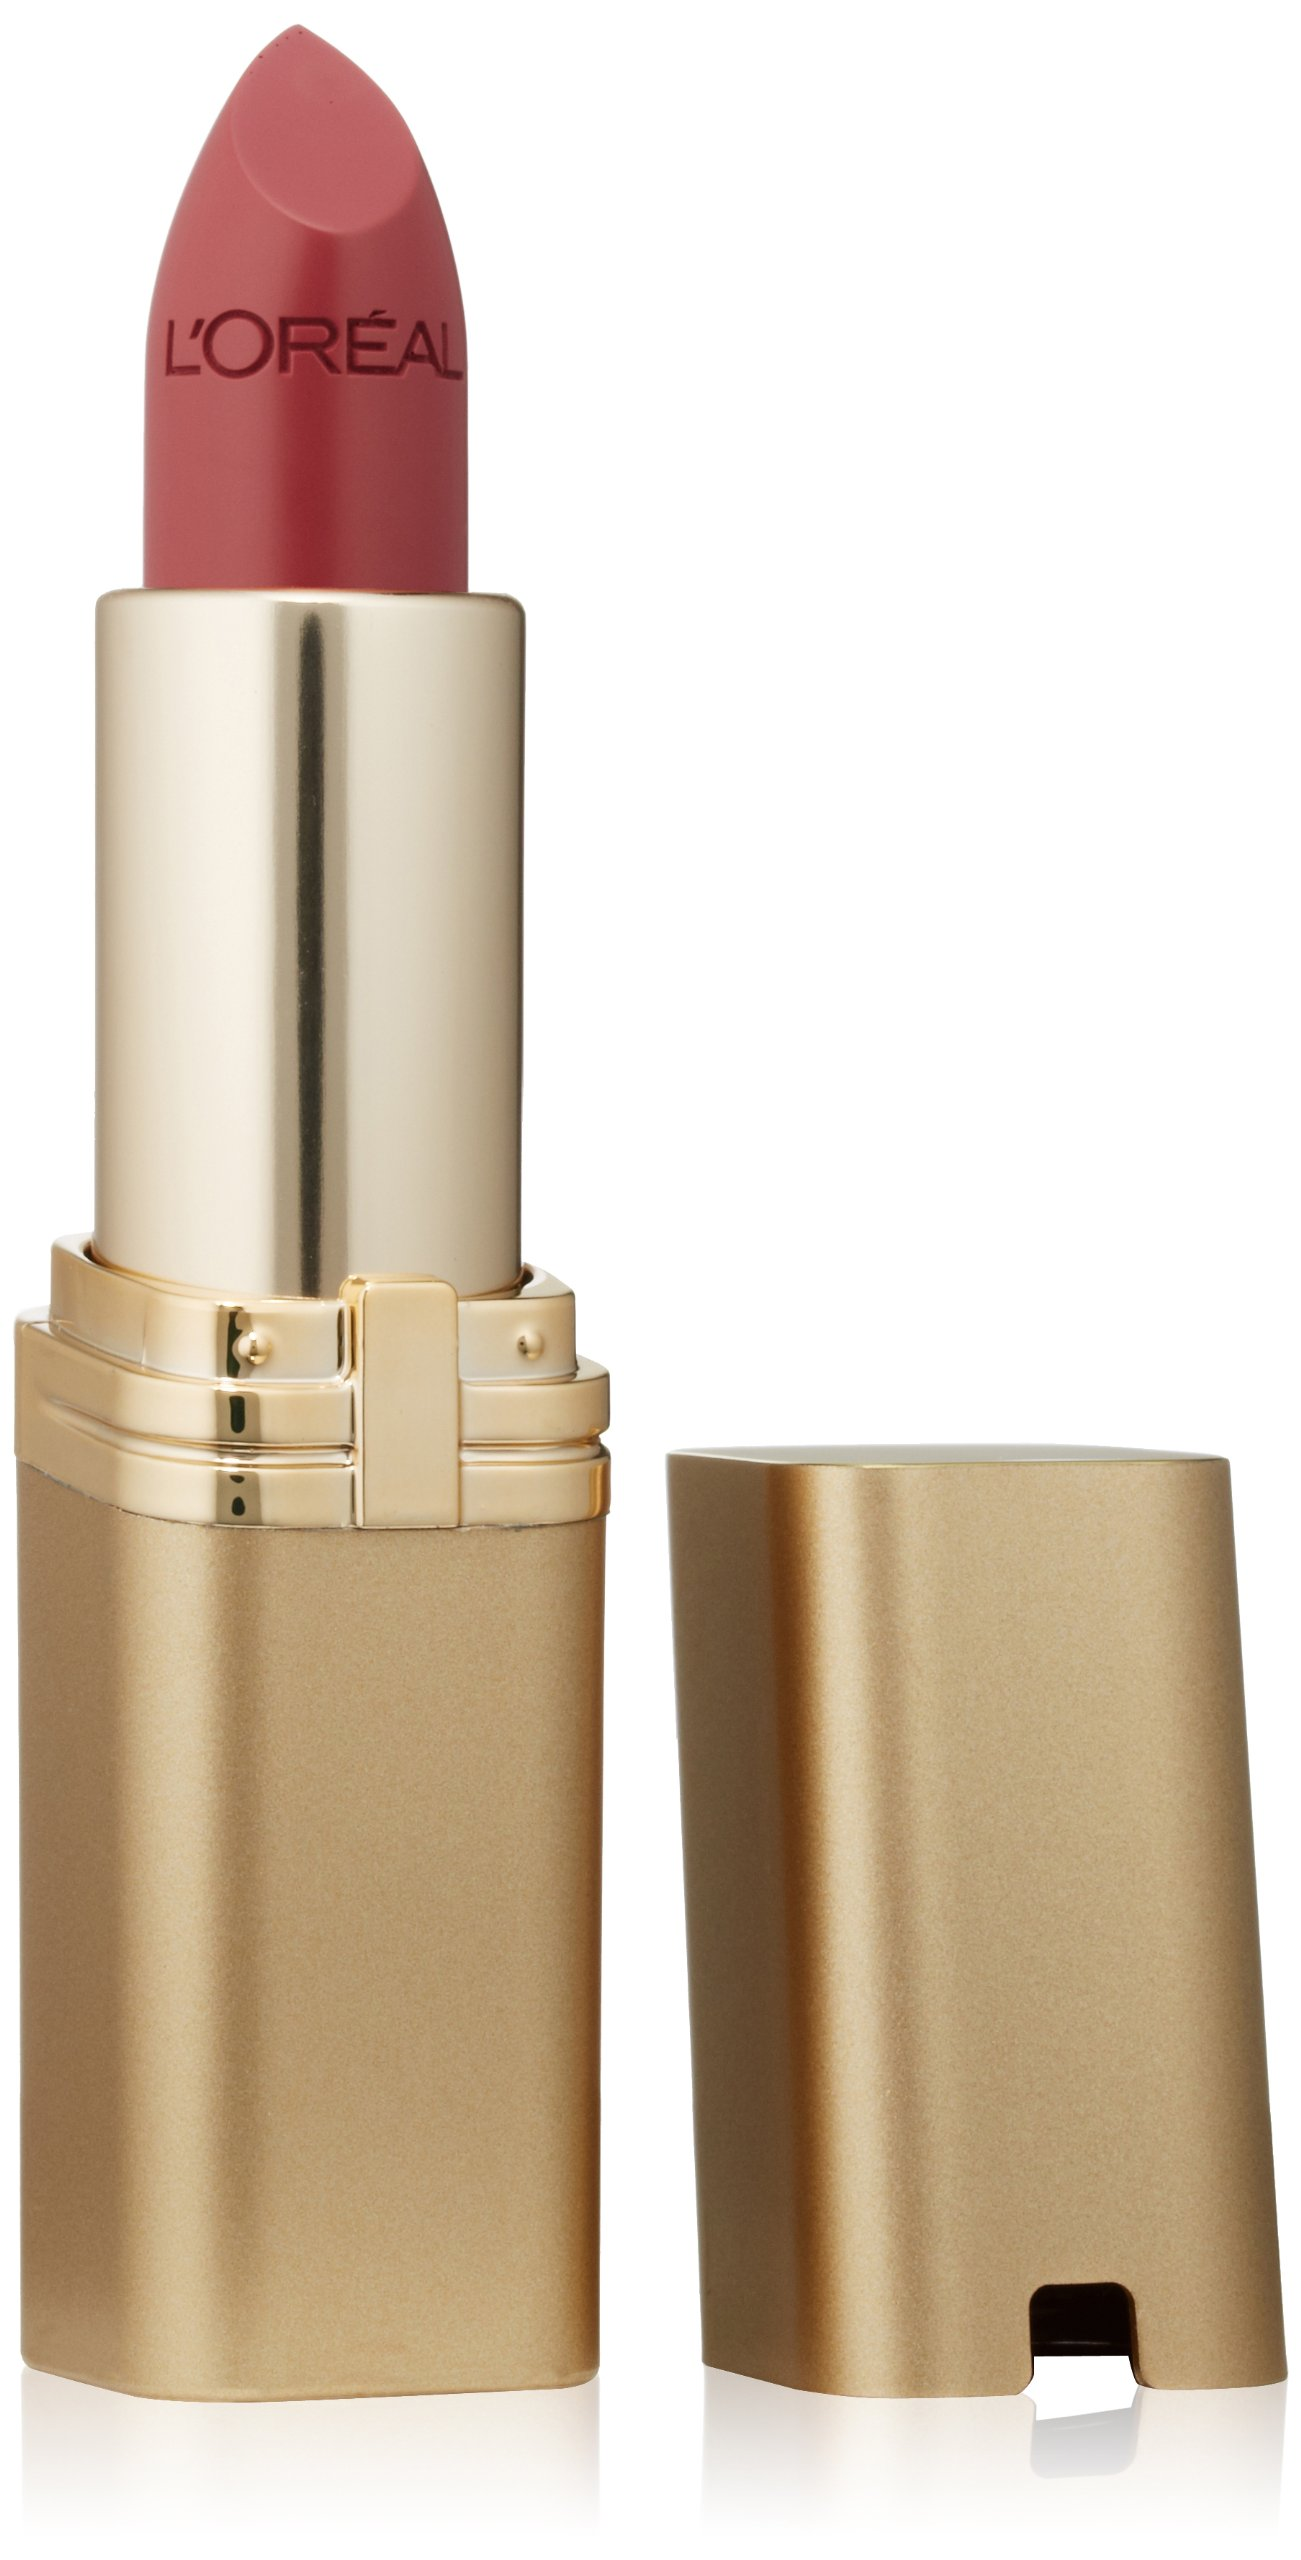 L'Oréal Paris Colour Riche Lipstick, Saucy Mauve, 0.13 oz.